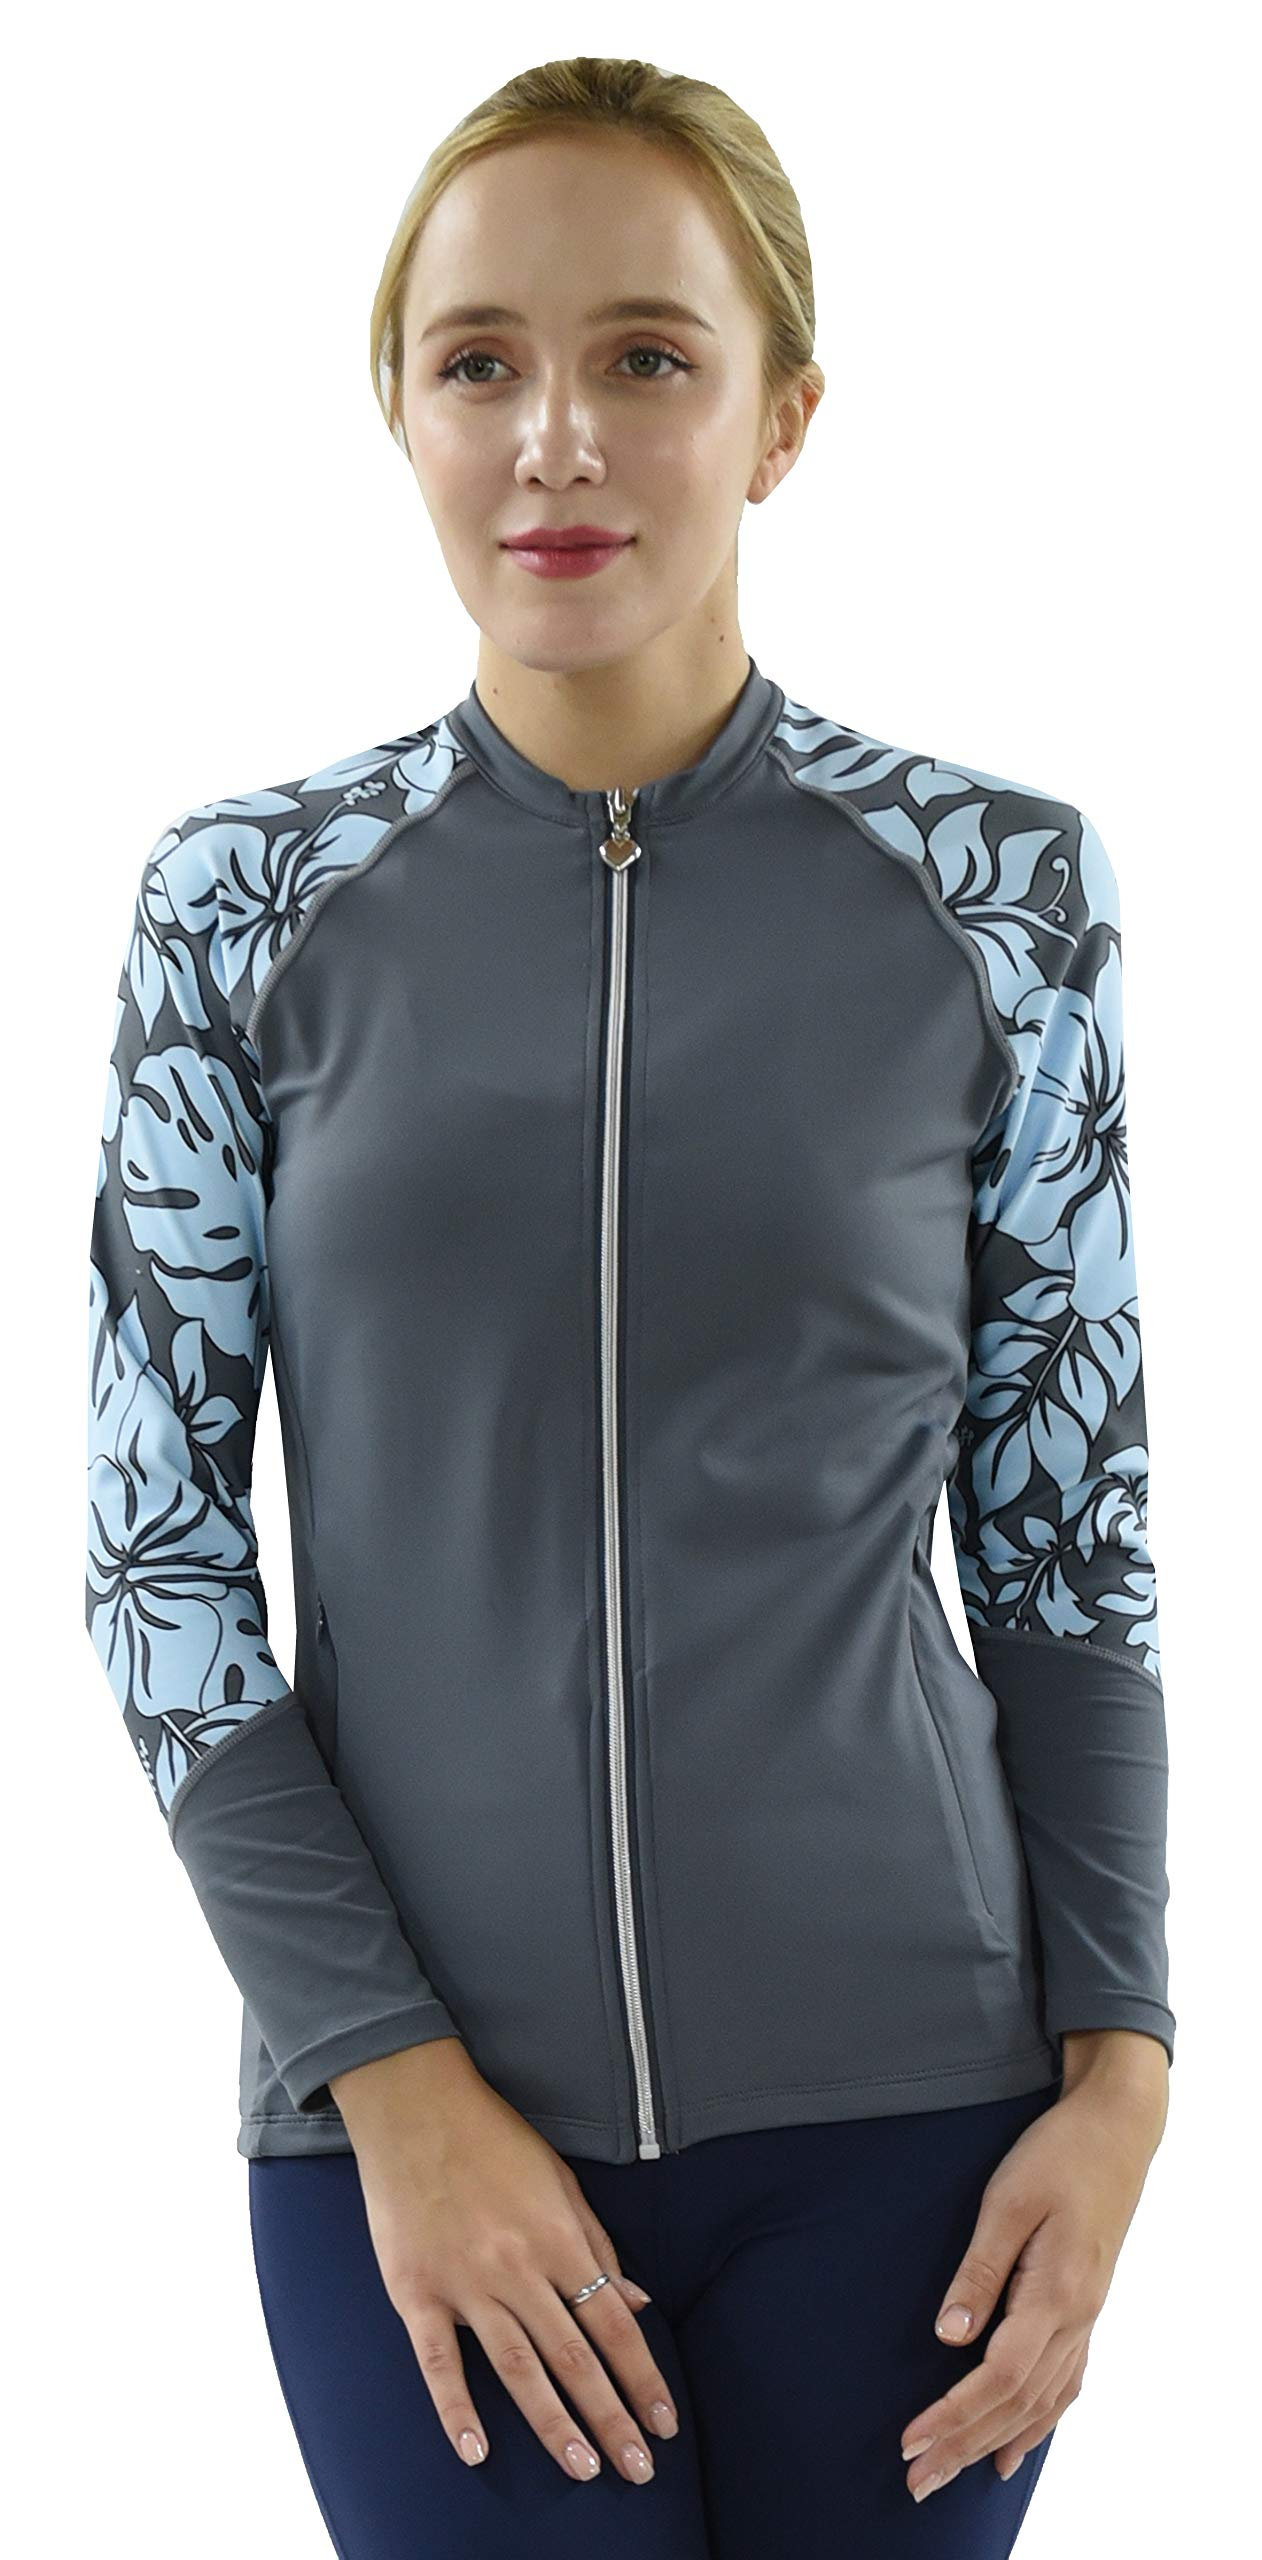 Private Island Hawaii UV Women Rash Guard Zip Up Long Sleeve Yoga Active Workout (XXXL, GwB-JRSRGT) by Private Island